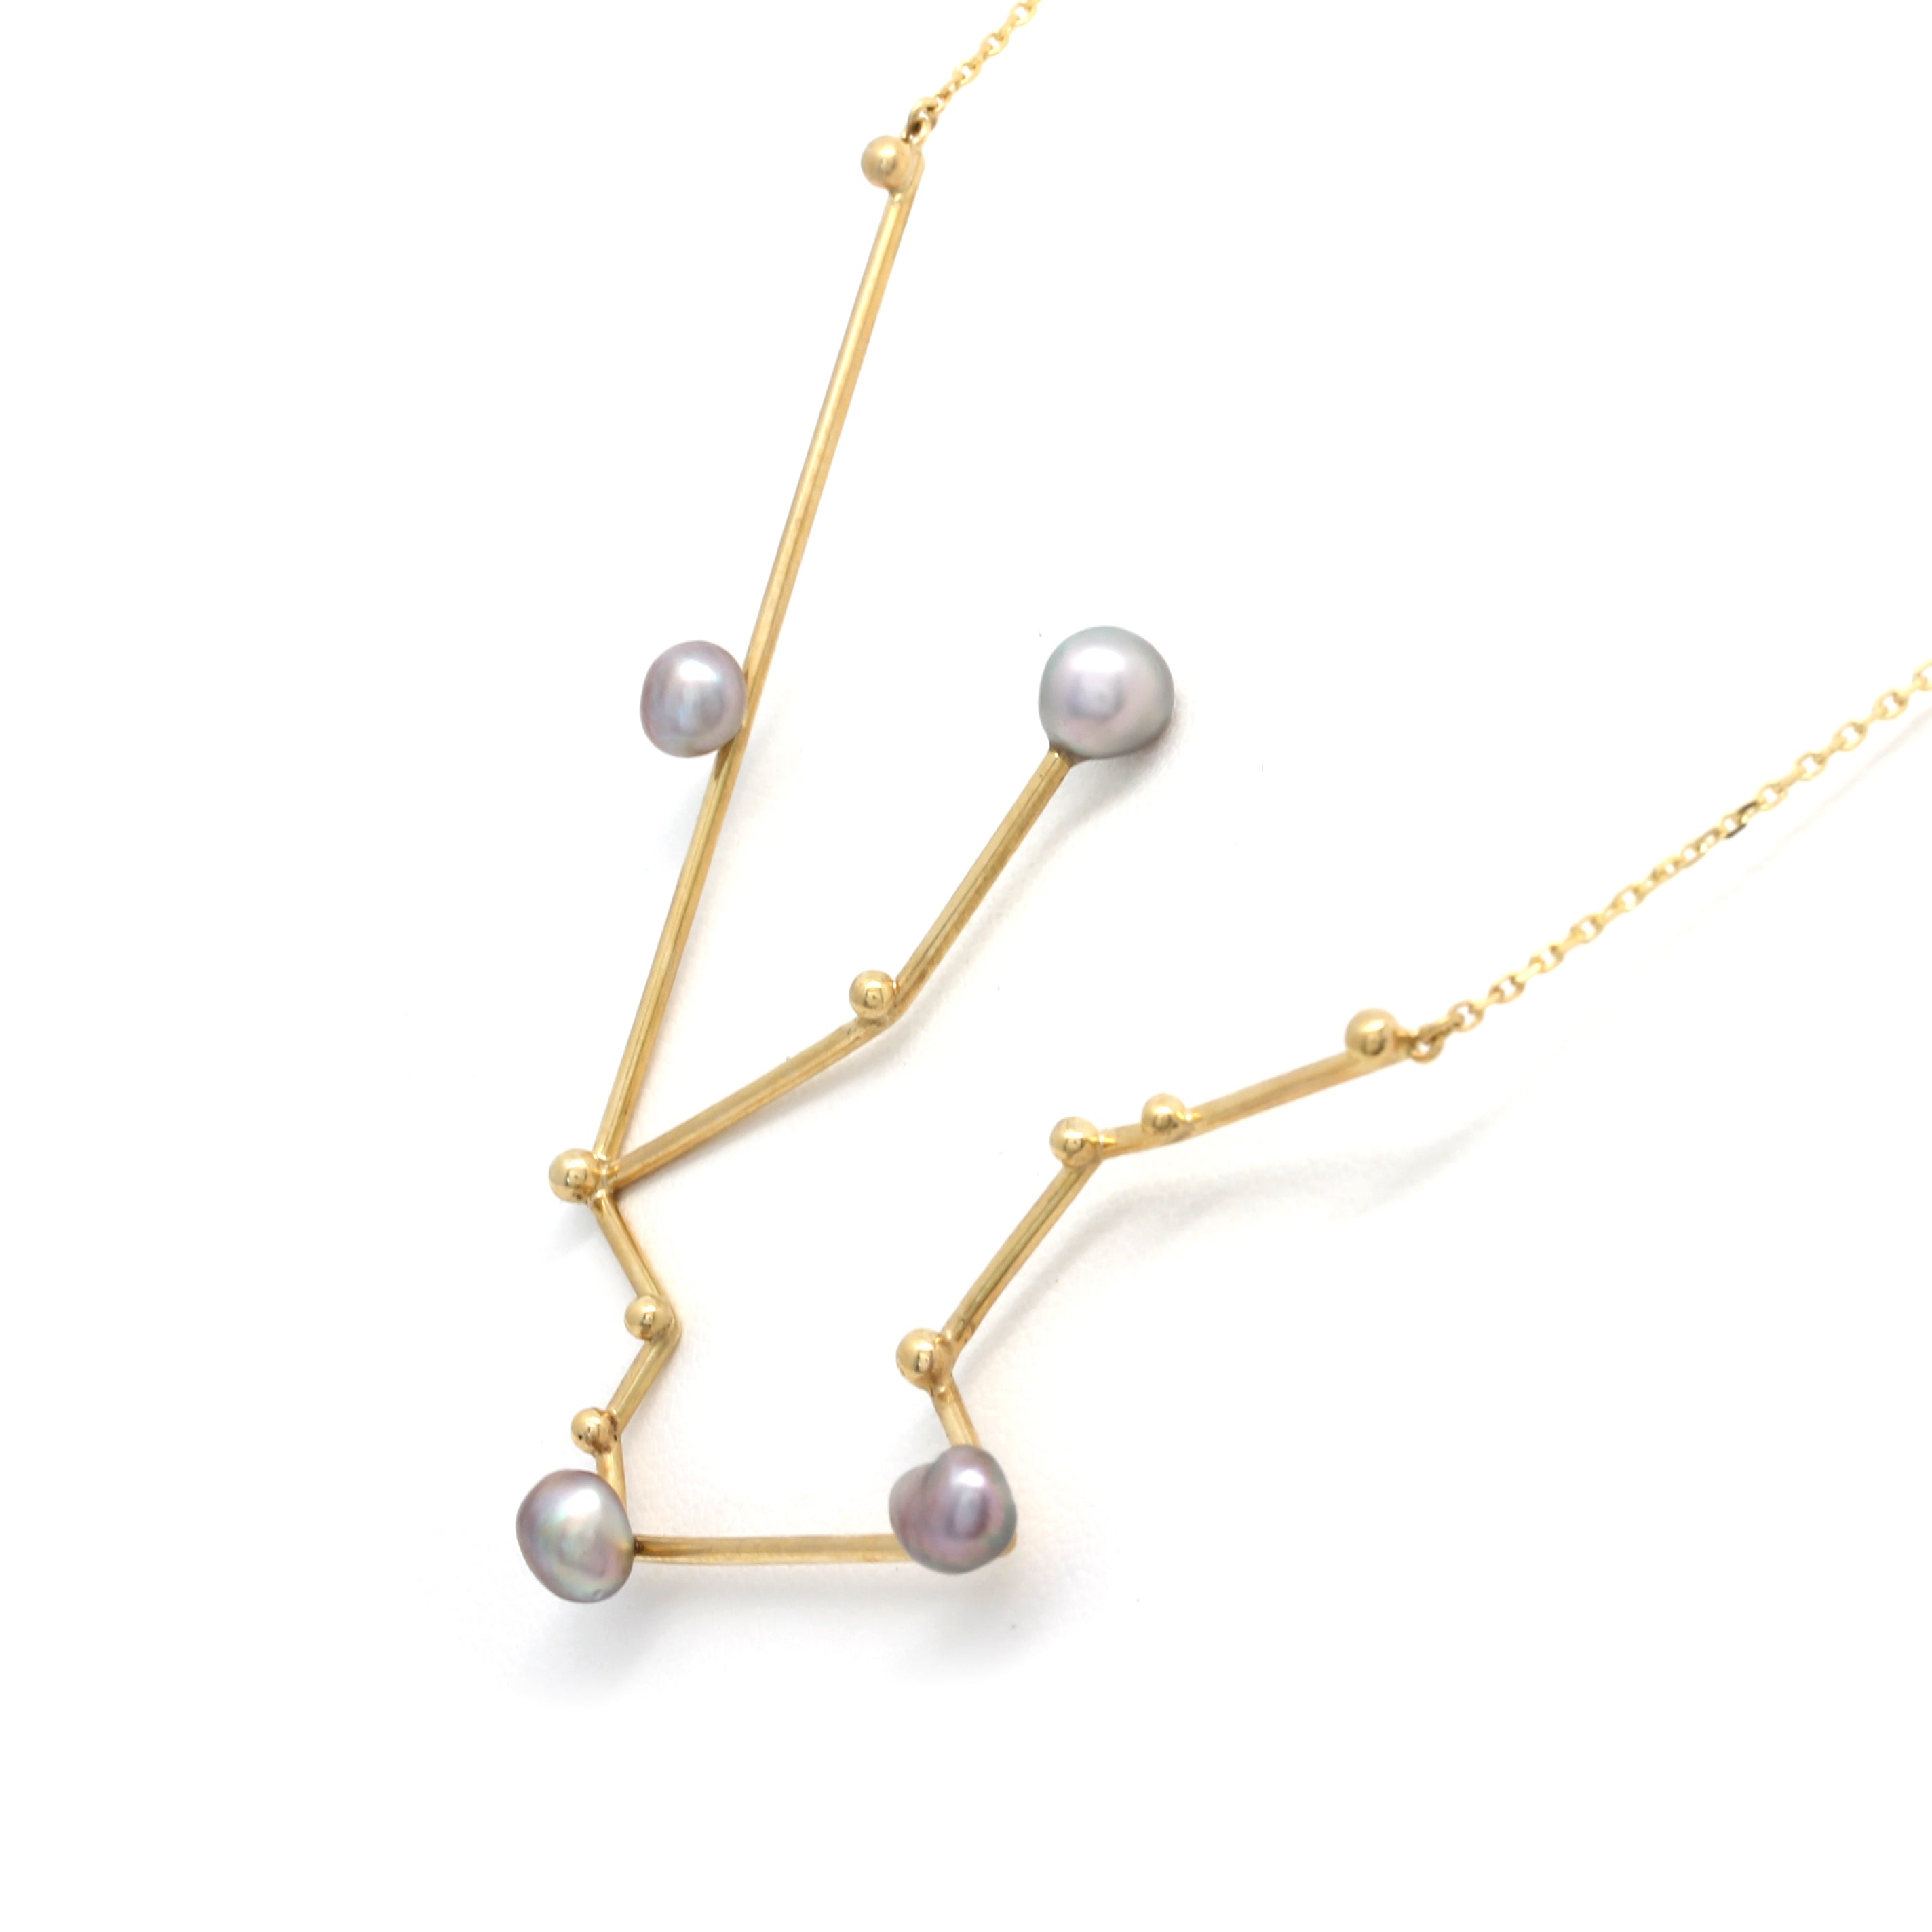 """Aquarius"" 14K Yellow Gold Pendant and Chain with Cortez Keshi Pearls"